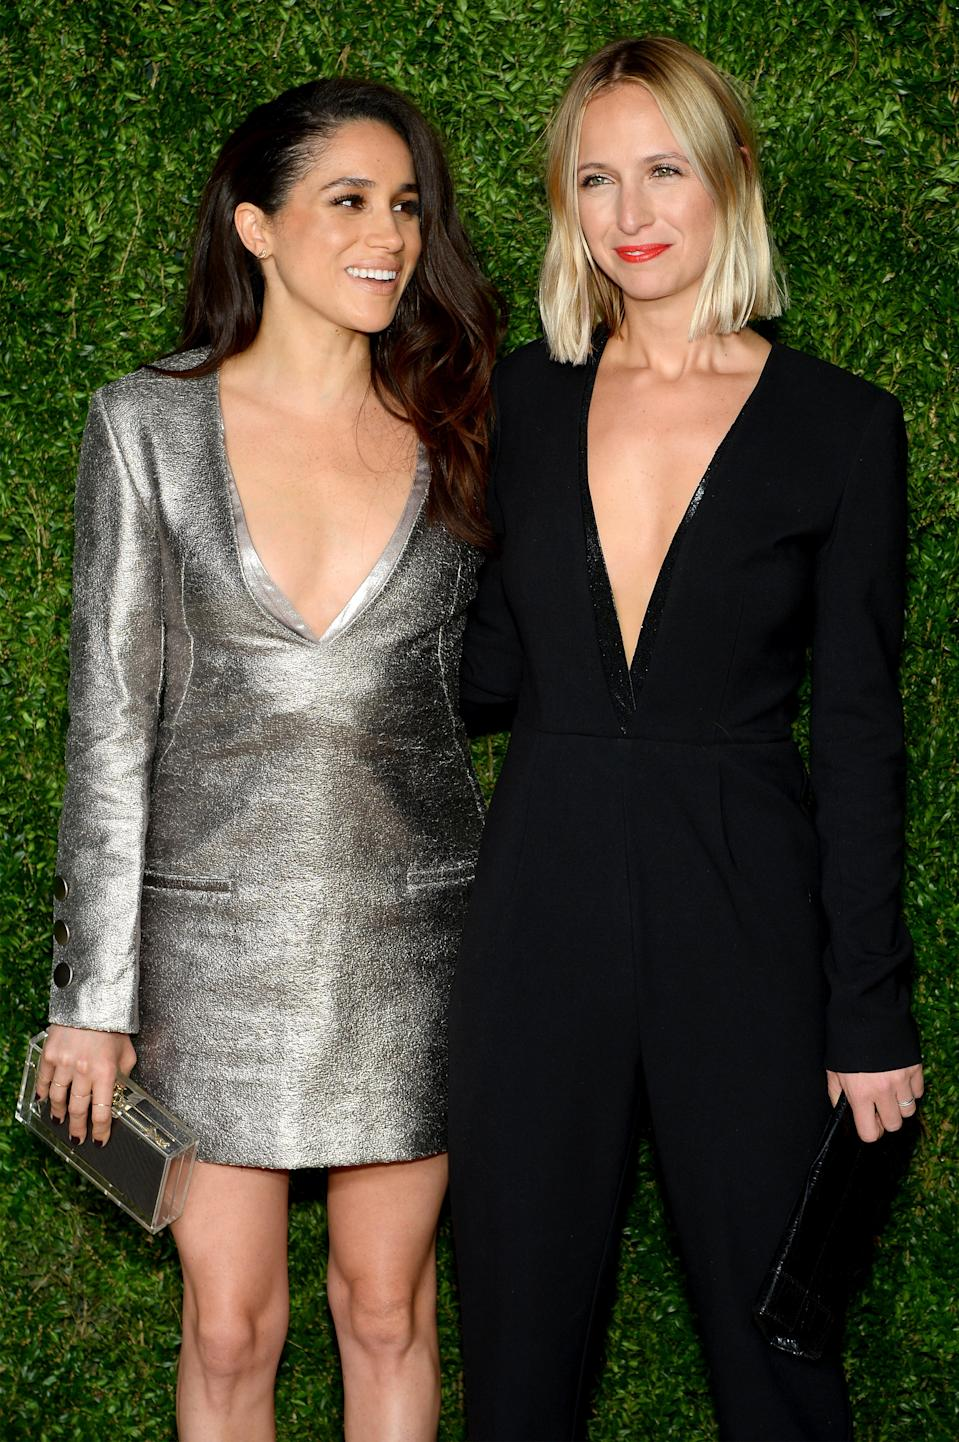 Meghan Markle and Misah Nonoo at the 12th annual CFDA/Vogue Fashion Fund Awards at Spring Studios on Nov. 2, 2015 in New York City. (Getty Images)